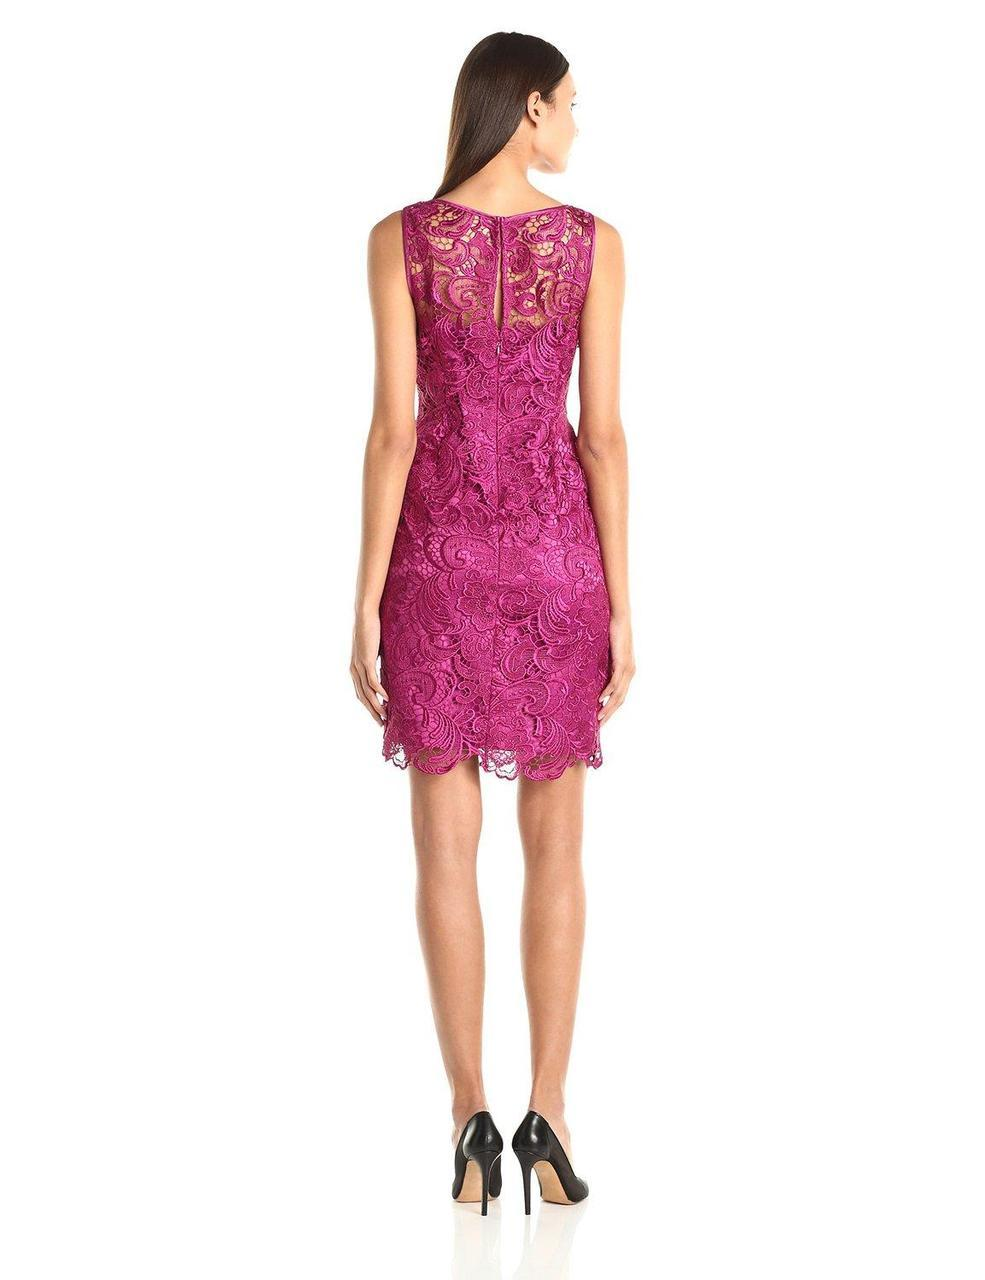 Adrianna Papell - Lace Overlay Dress 41863800 in Pink